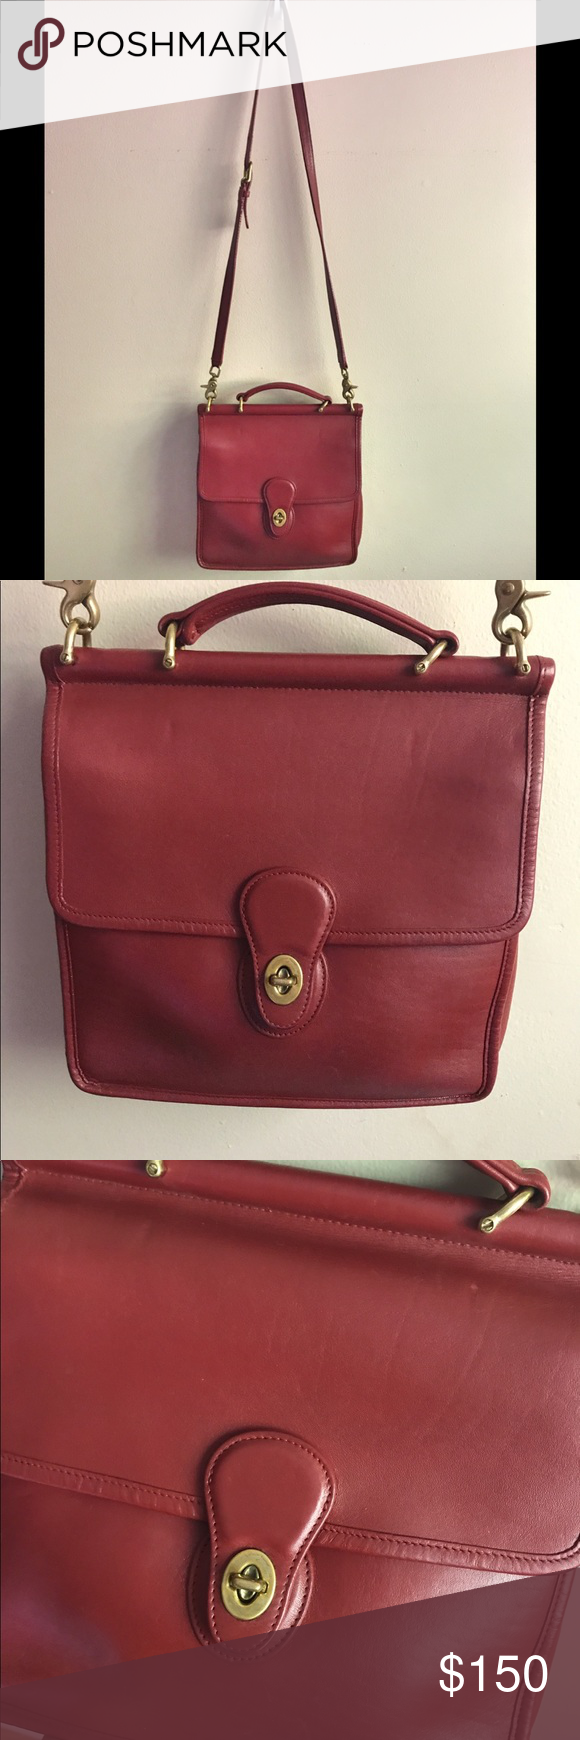 coach vintage red bag up rh publicrelationsjacksonvillefl com